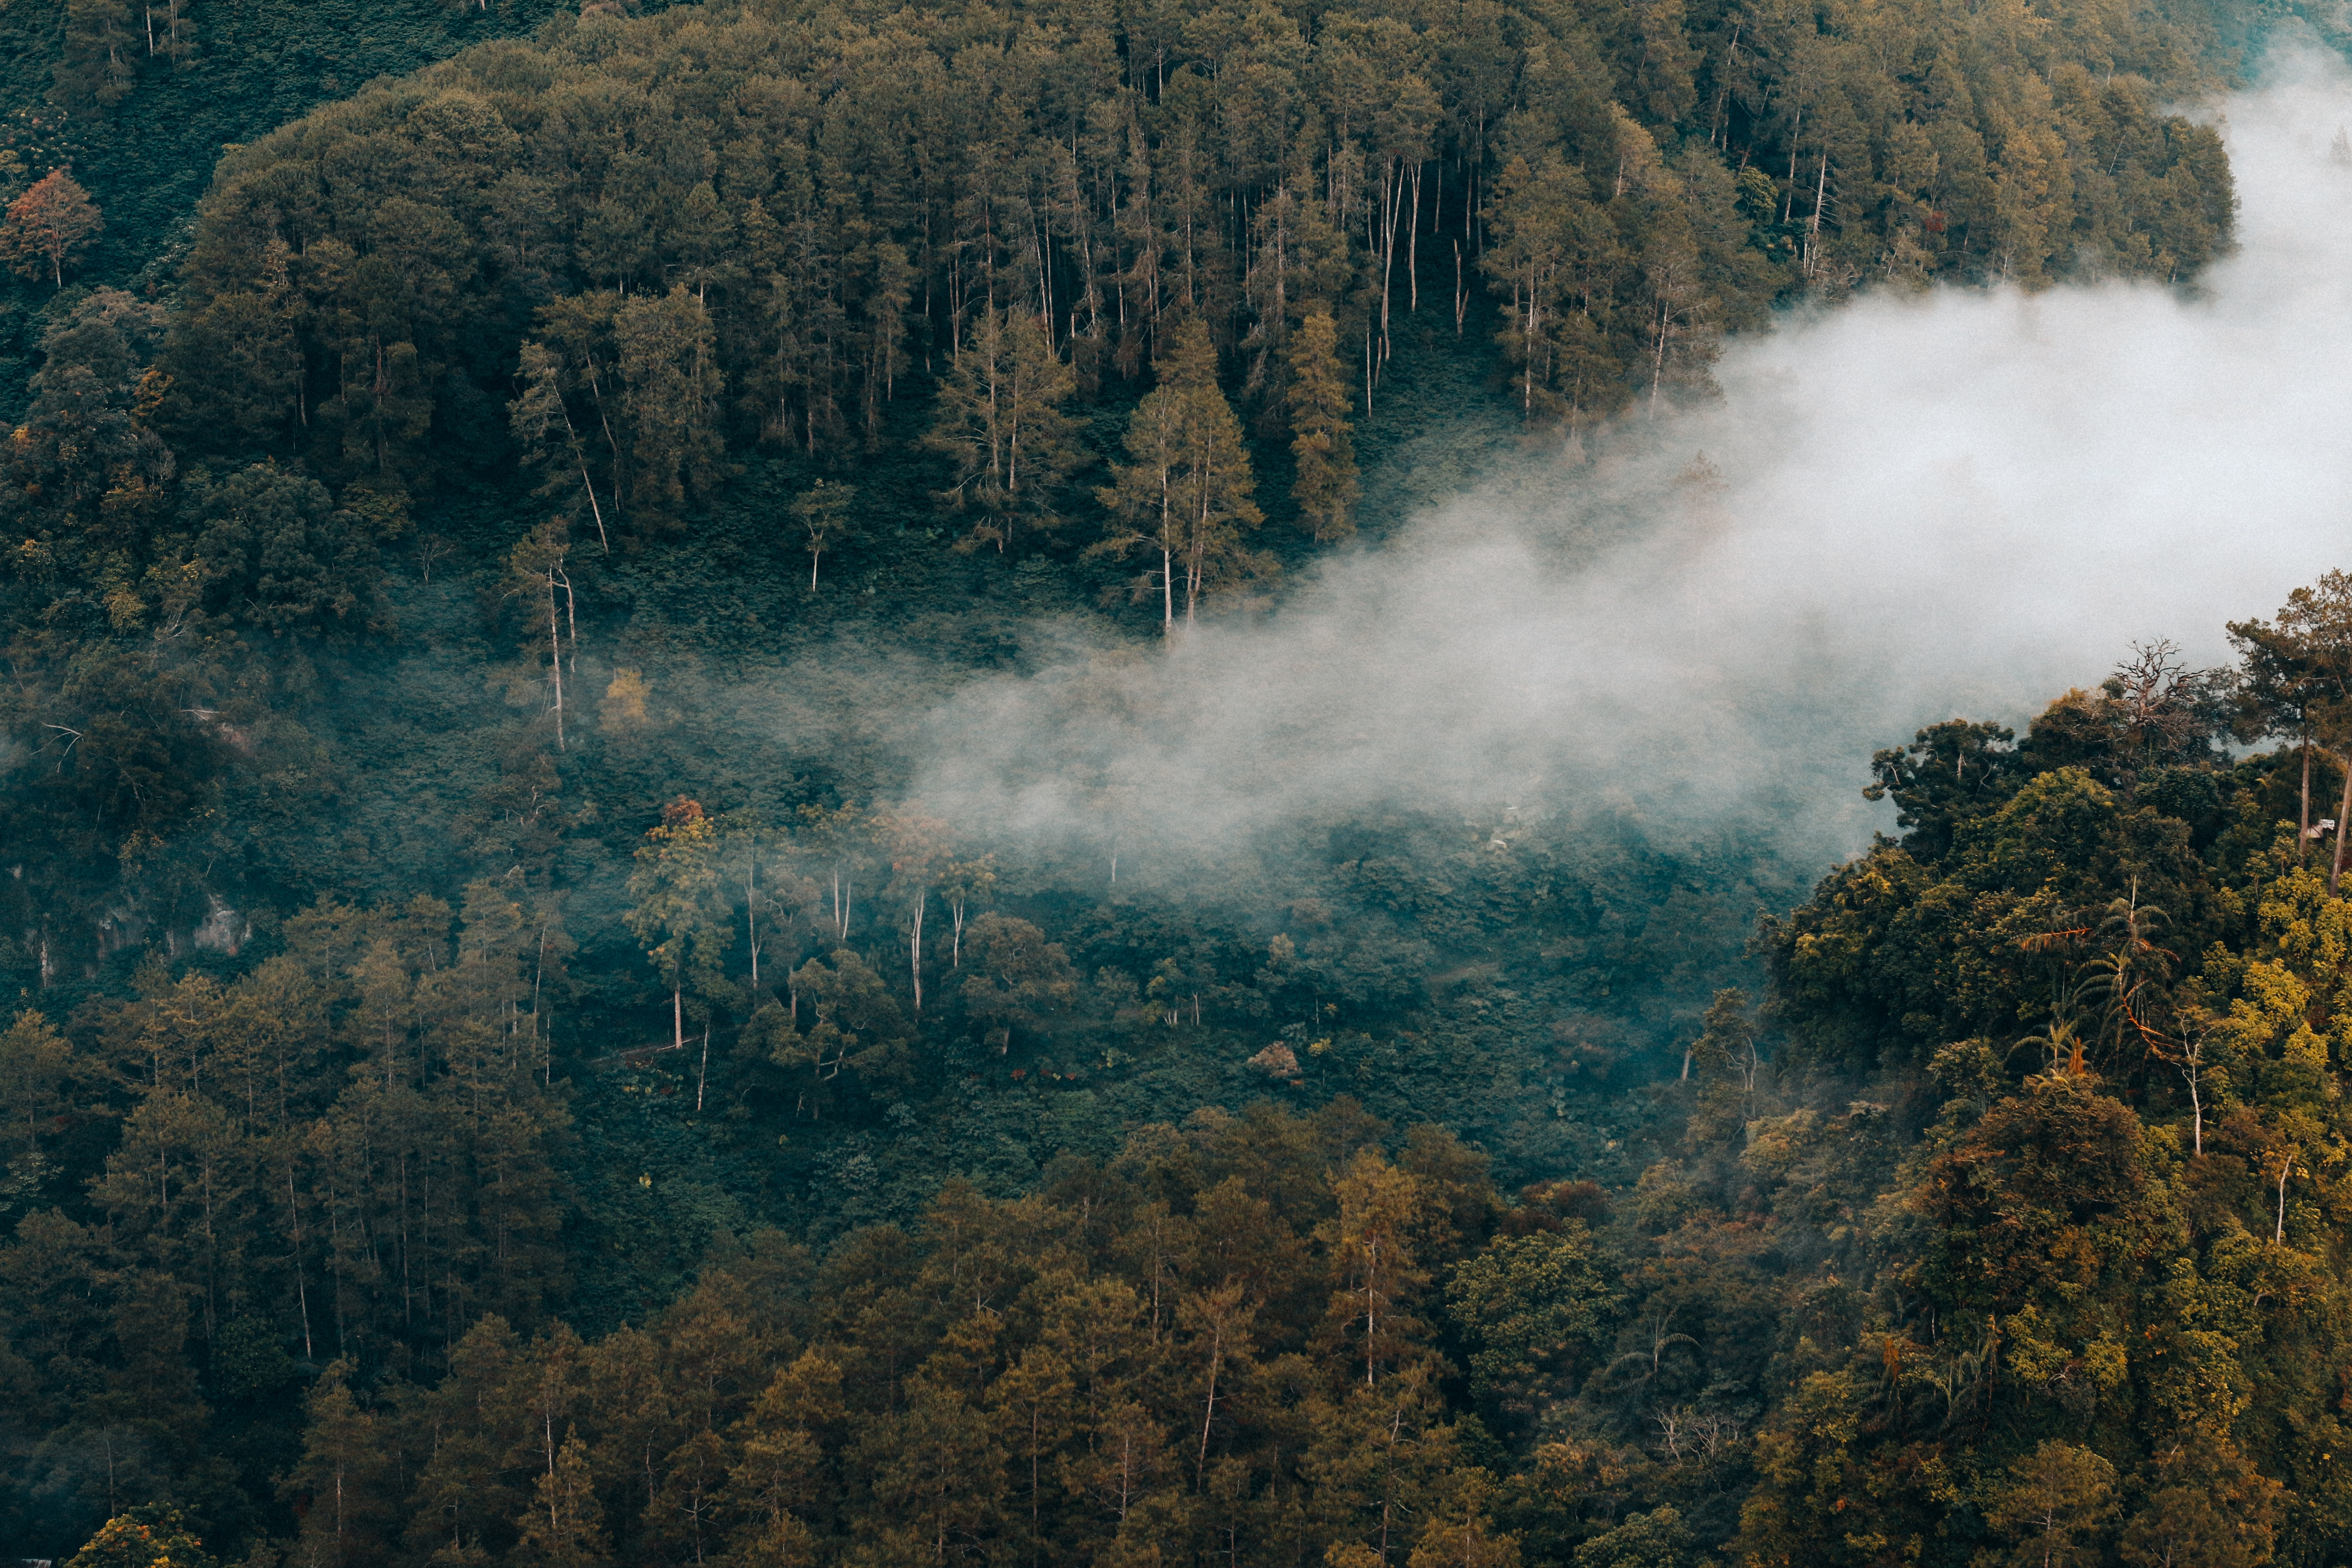 aerial photo of forest with smoke during daytime